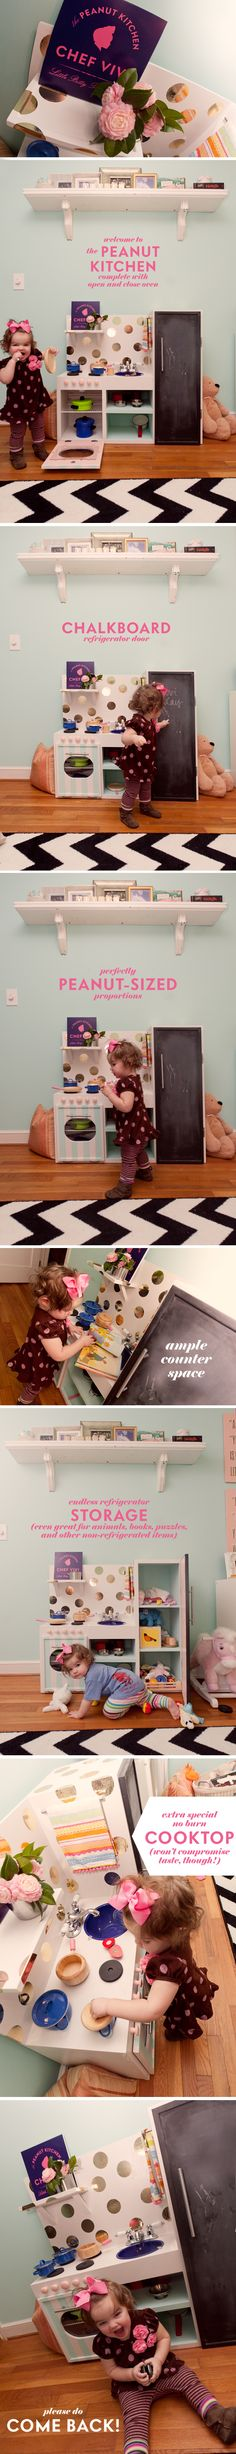 seriously cute play kitchen. I especially love the gold polka dots made from metallic contact paper.